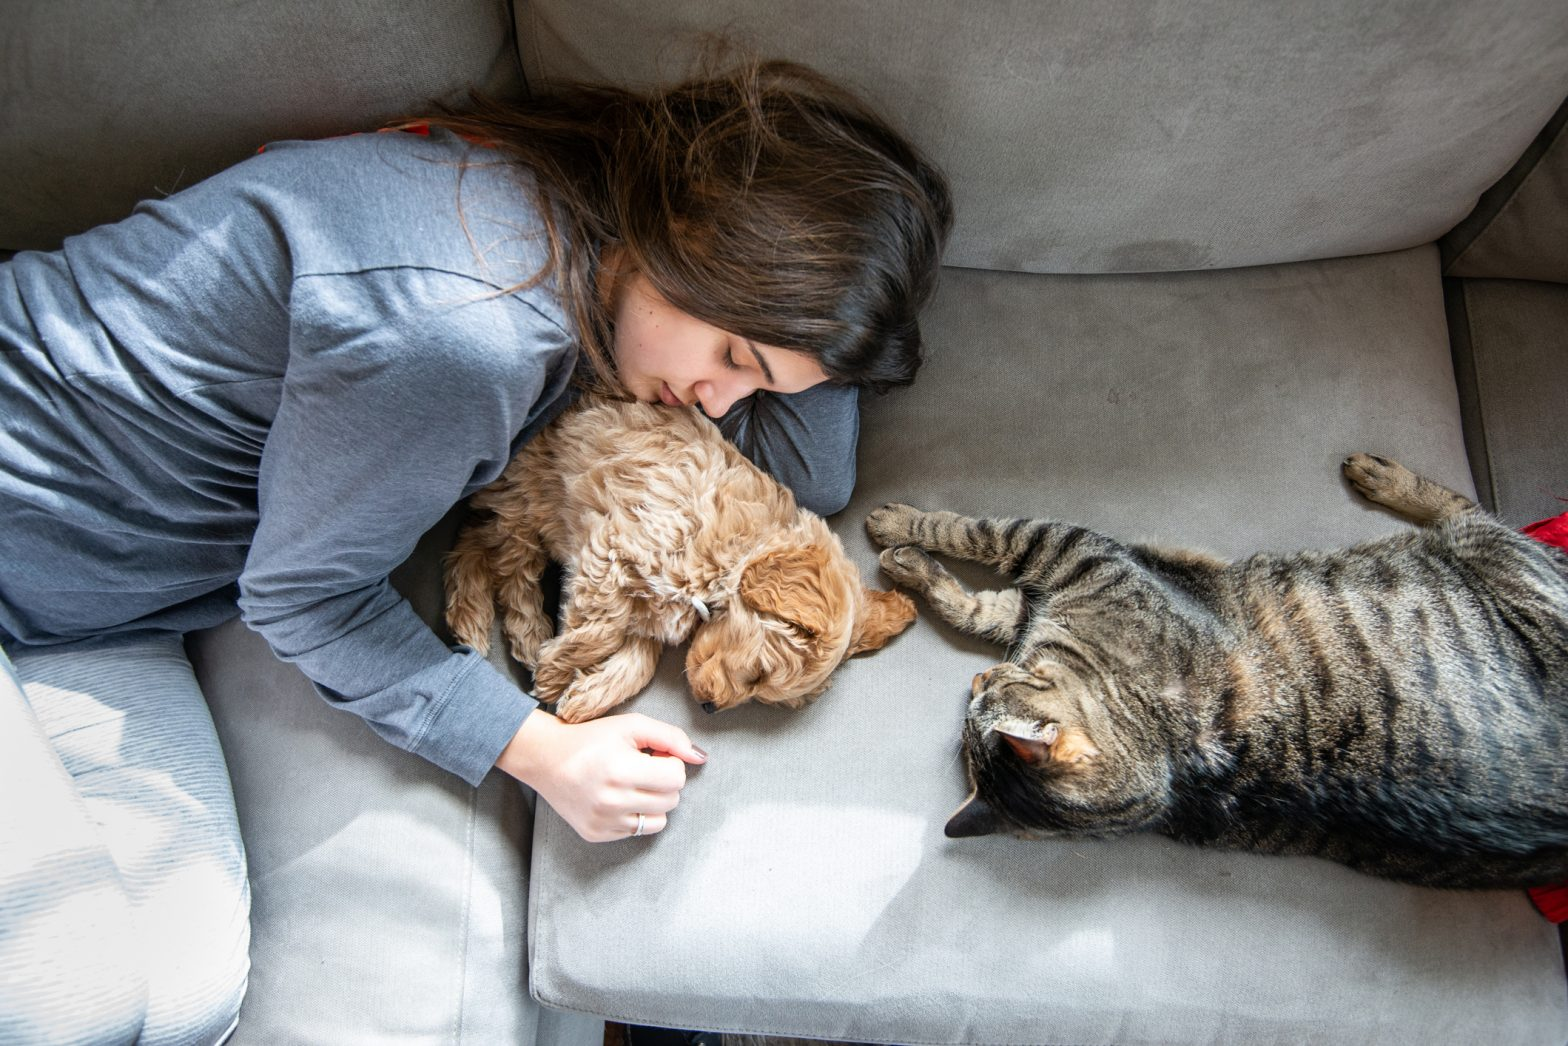 A woman sleeping in bed with a dog and cat.